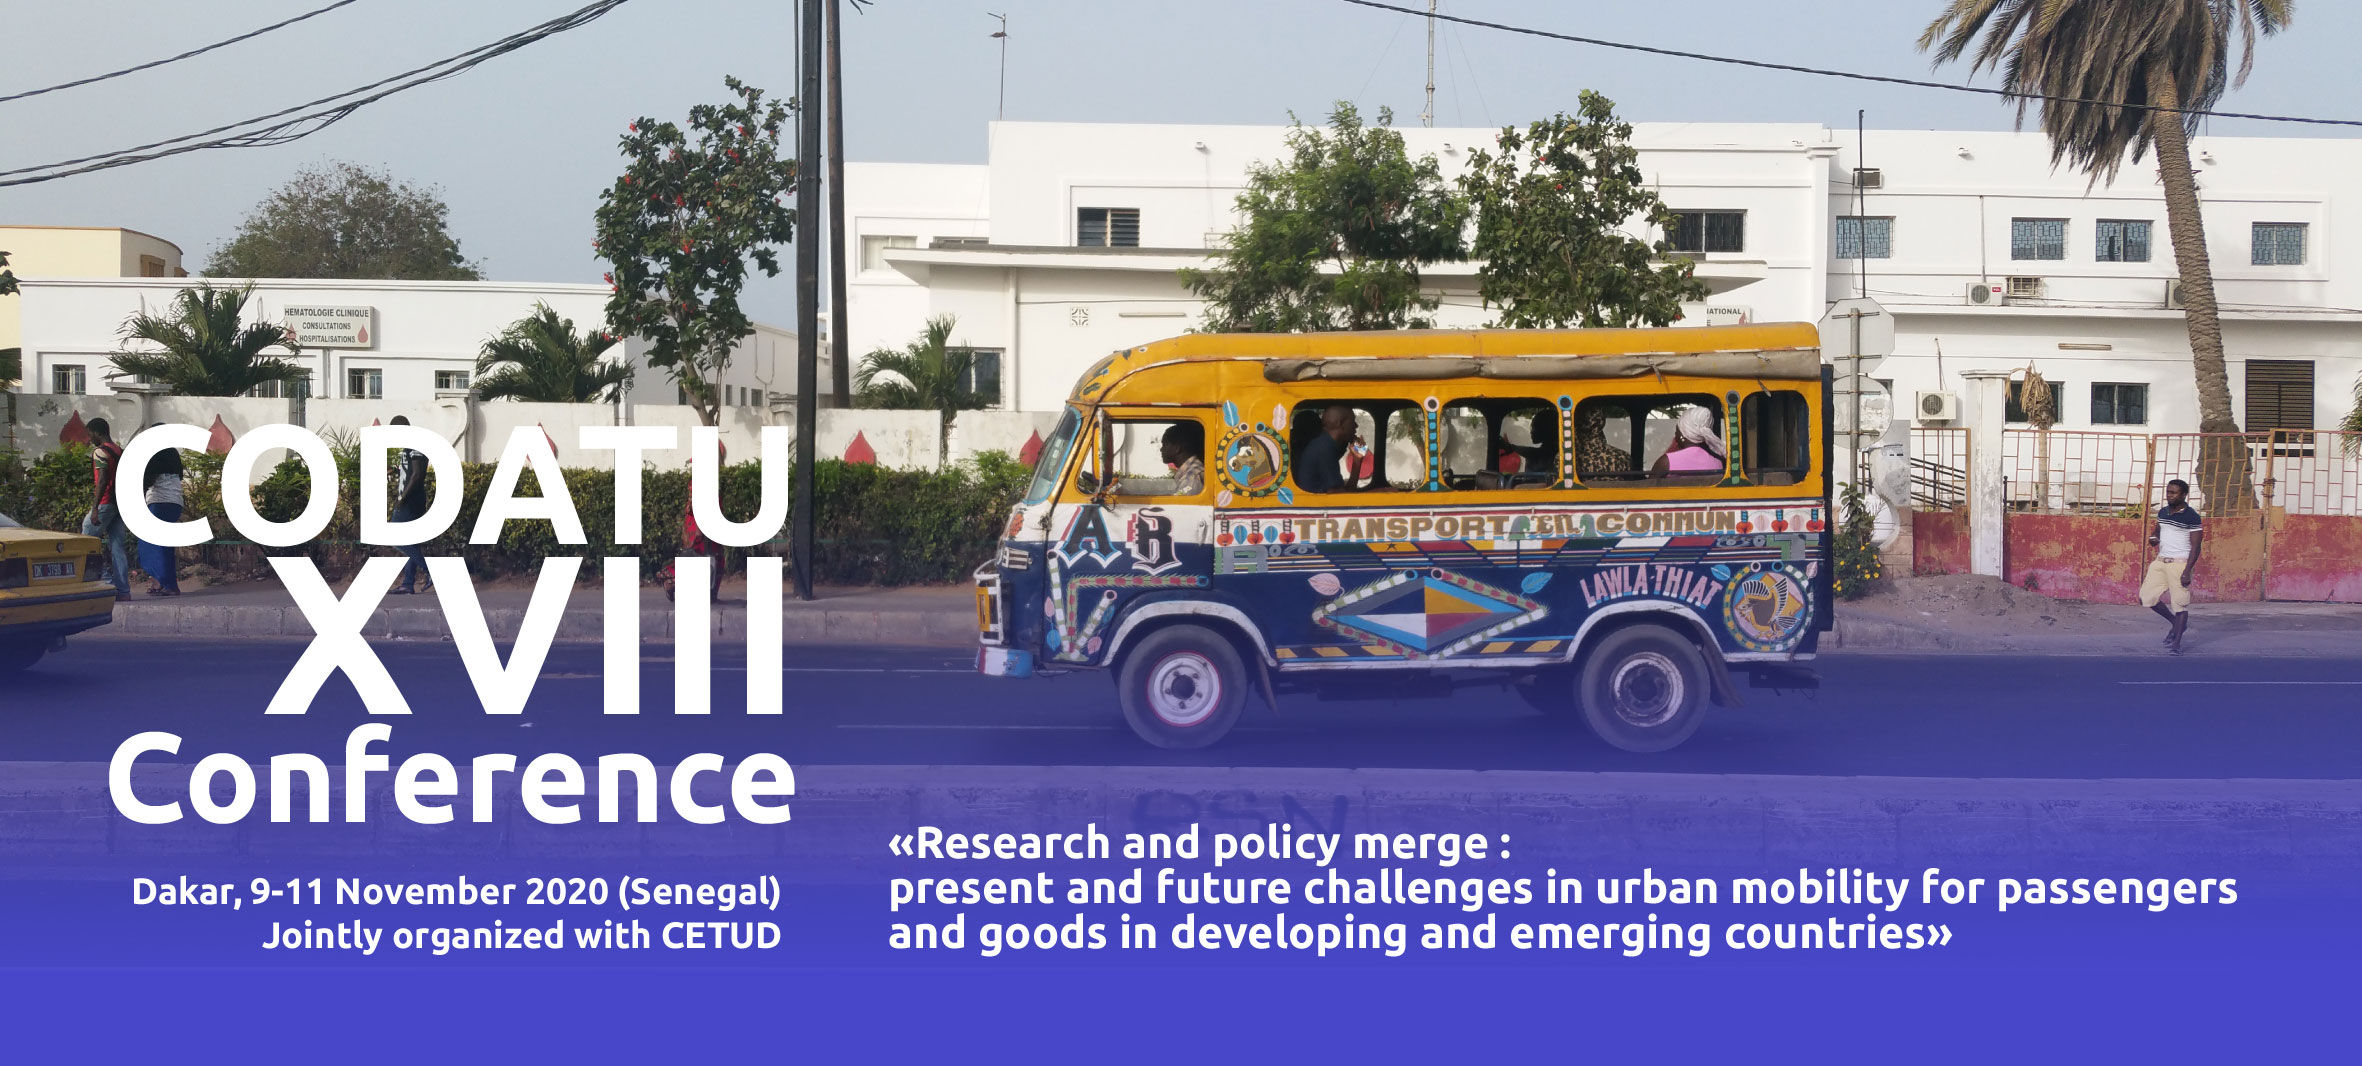 News about the CODATU 2020 Conference in Dakar